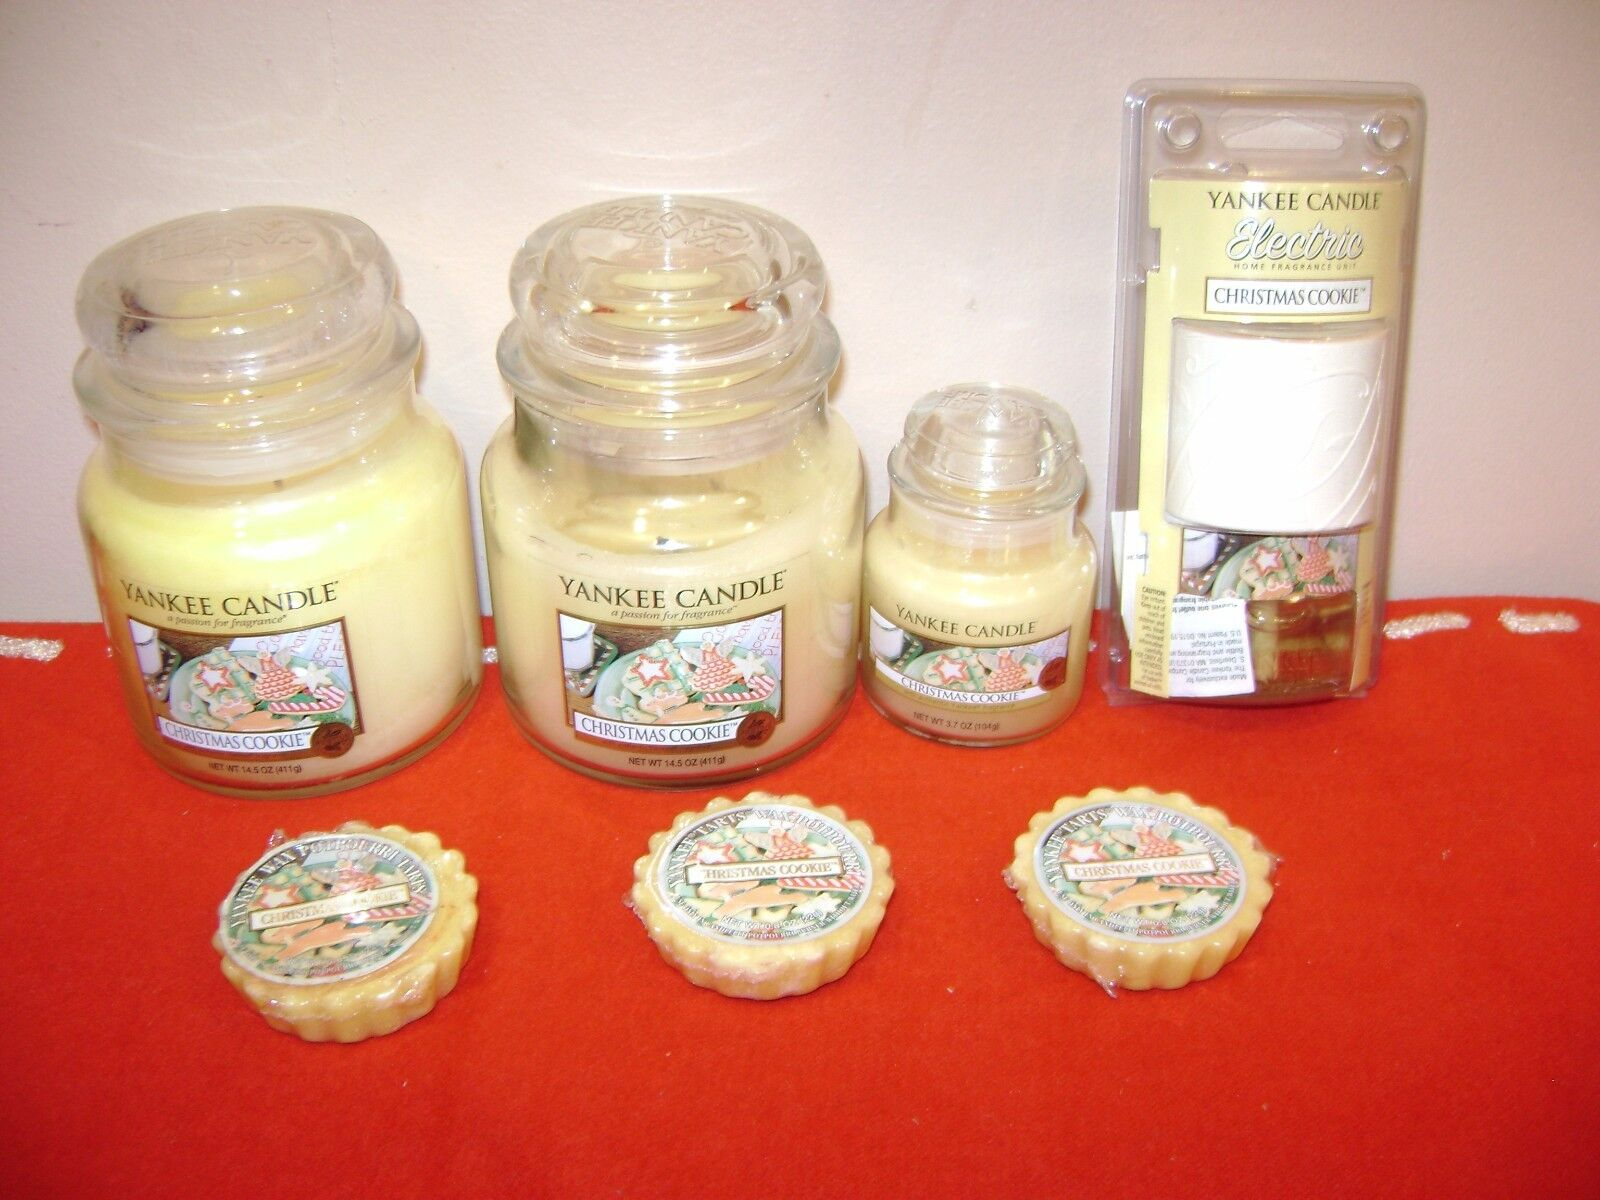 YANKEE CANDLE CHRISTMAS COOKIE (2) 14.5 oz + (1) 3.7 oz Jar, 3 Tarts & Electric